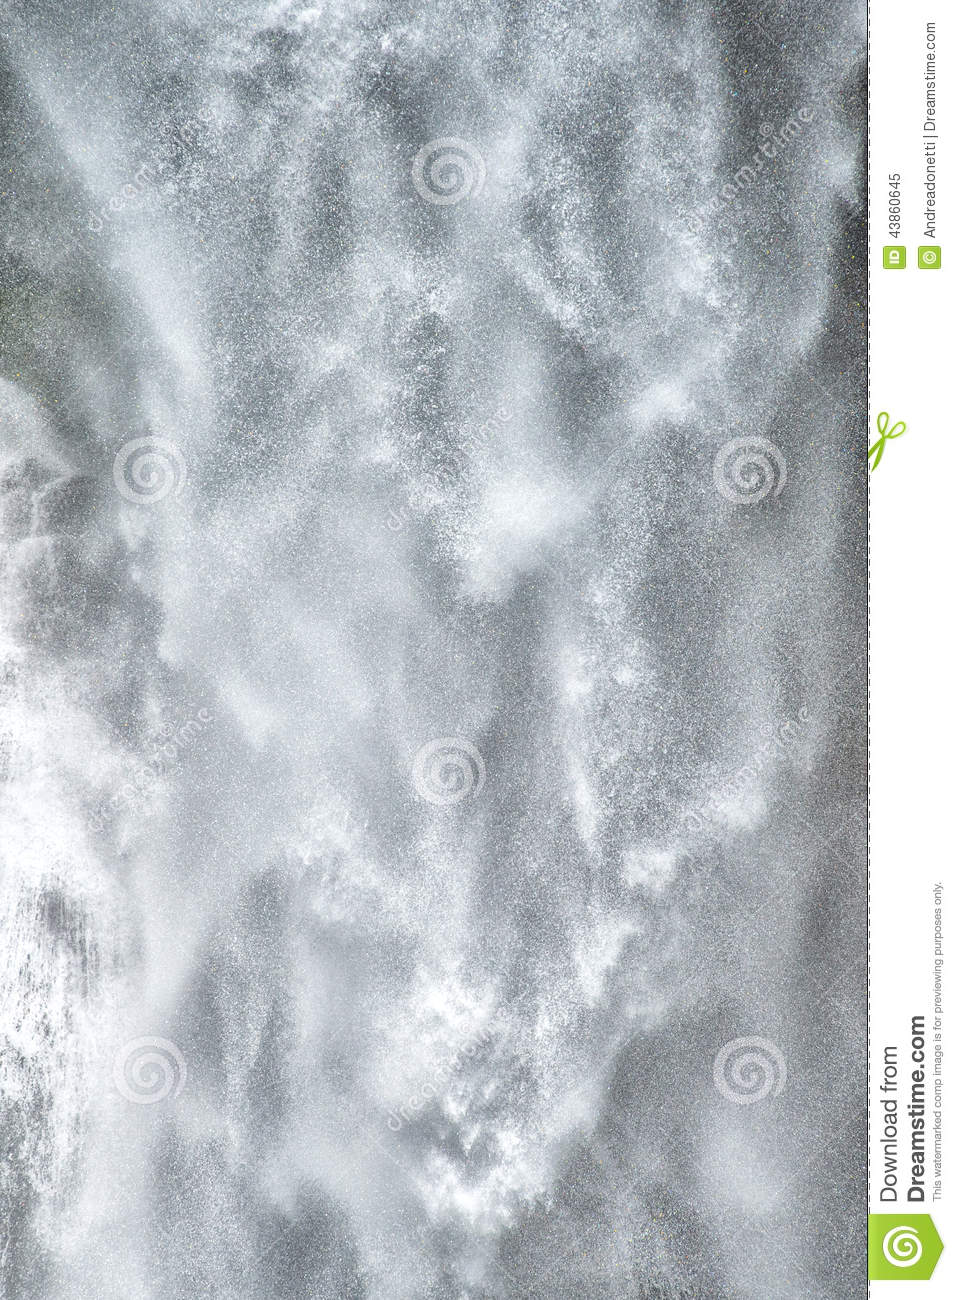 Background Texture Of Falling Water Stock Image Image